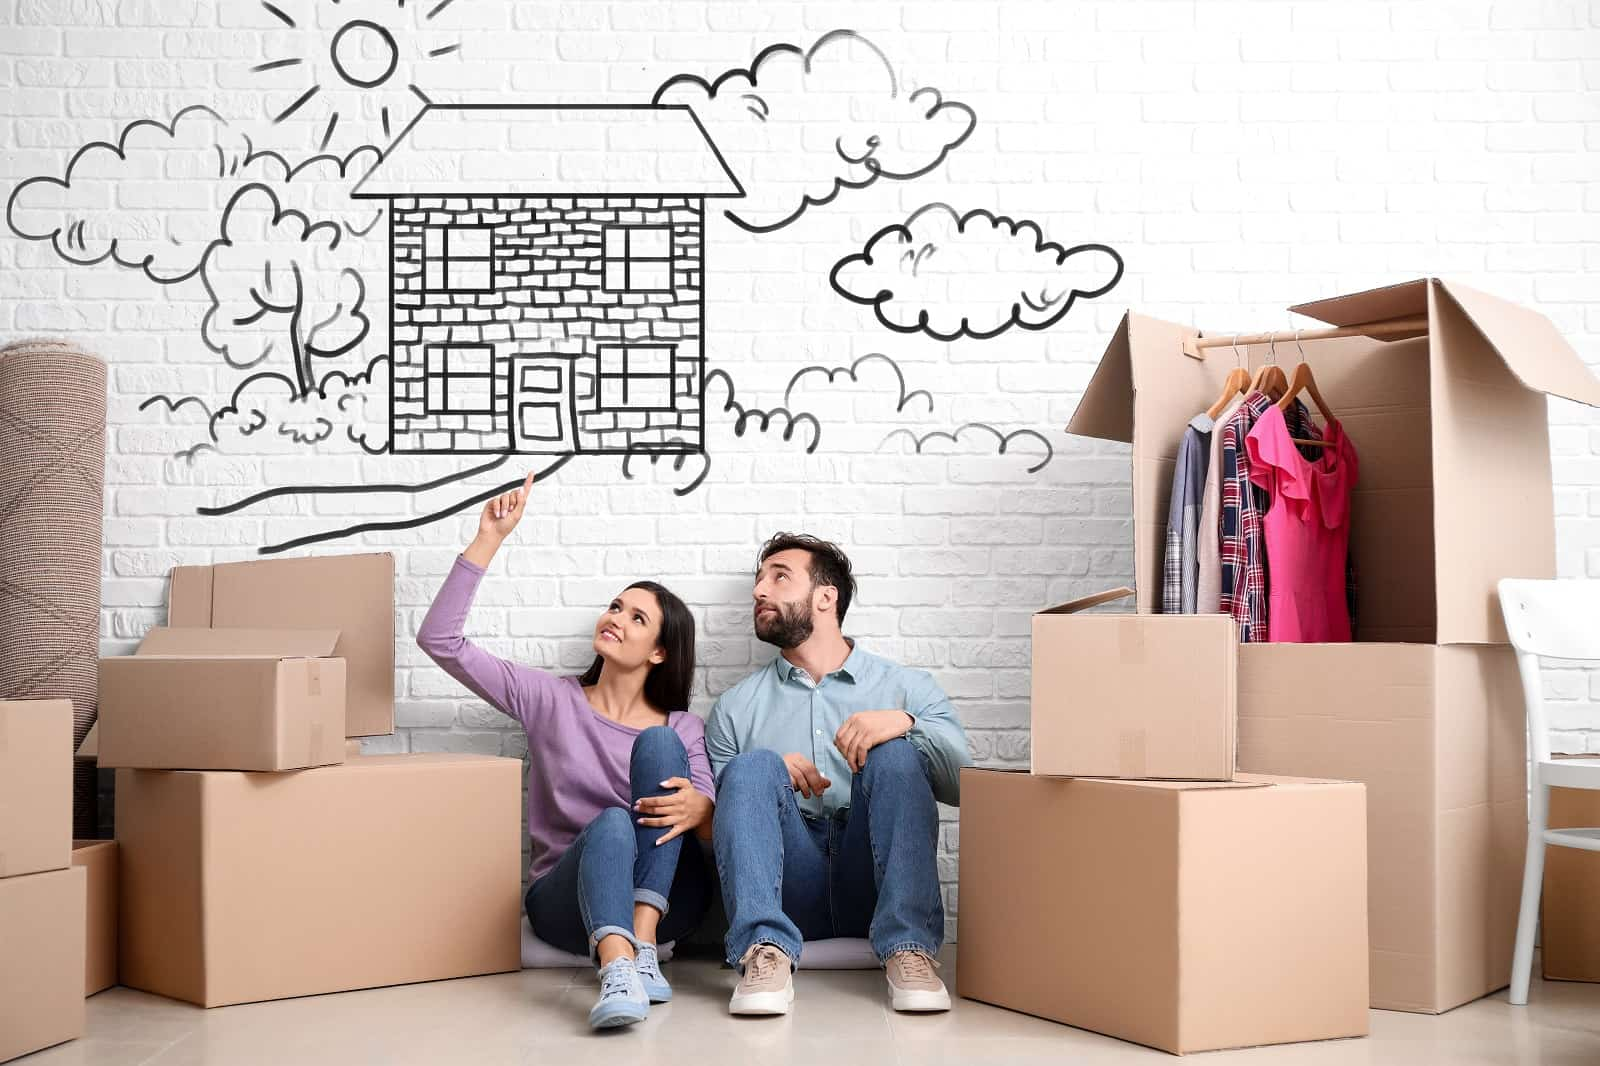 5 Tips to Prepare Your New Home Before Moving. Planning the new life before unpacking personal things